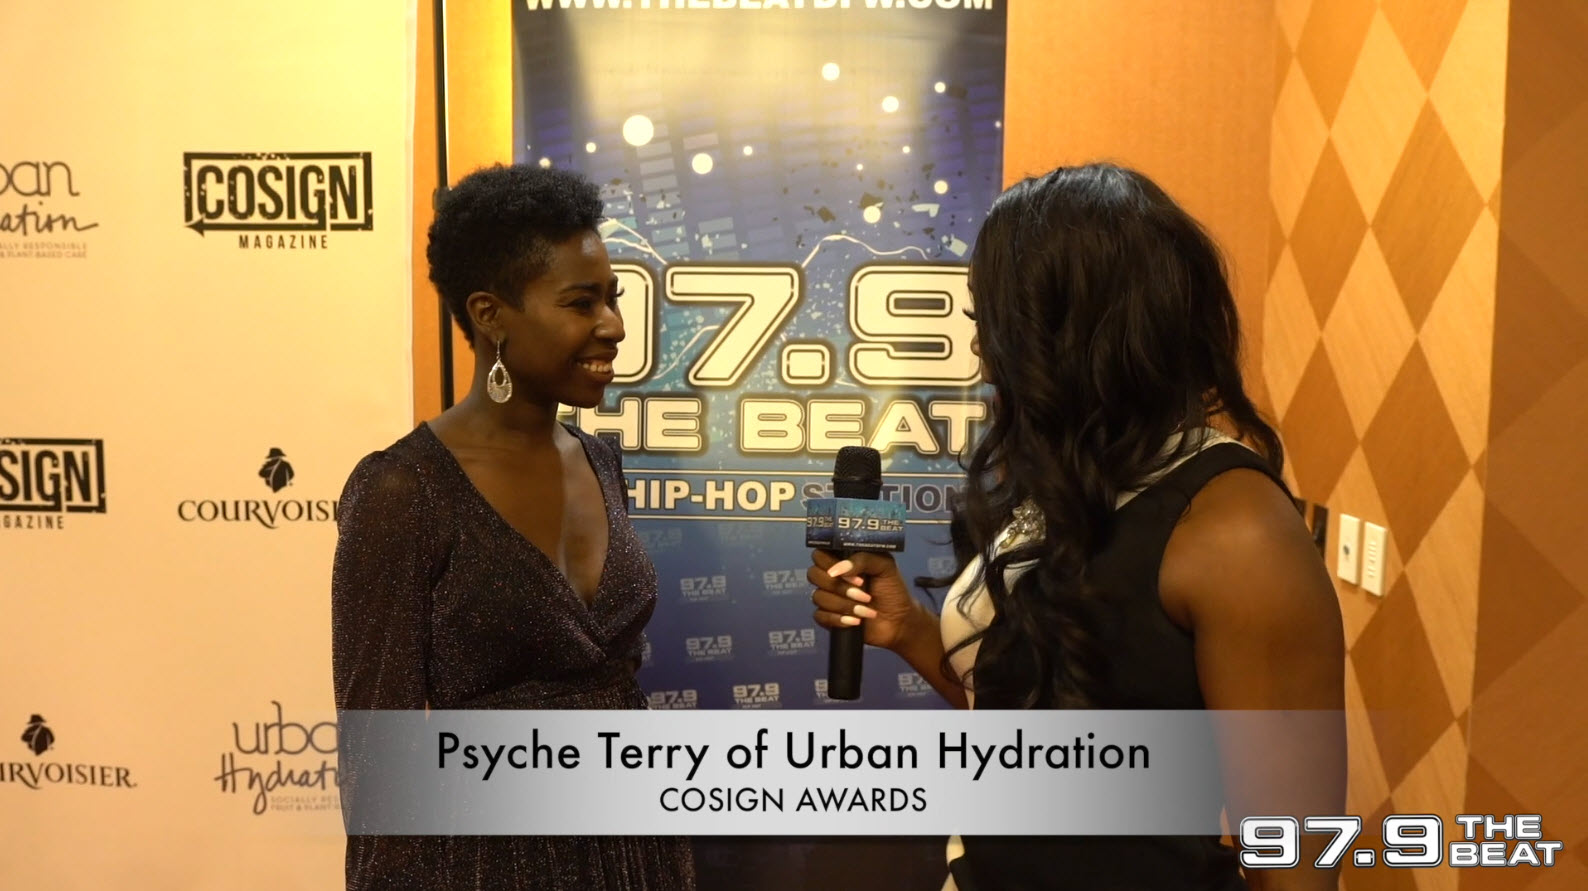 Psyche Terry of Urban Hydration